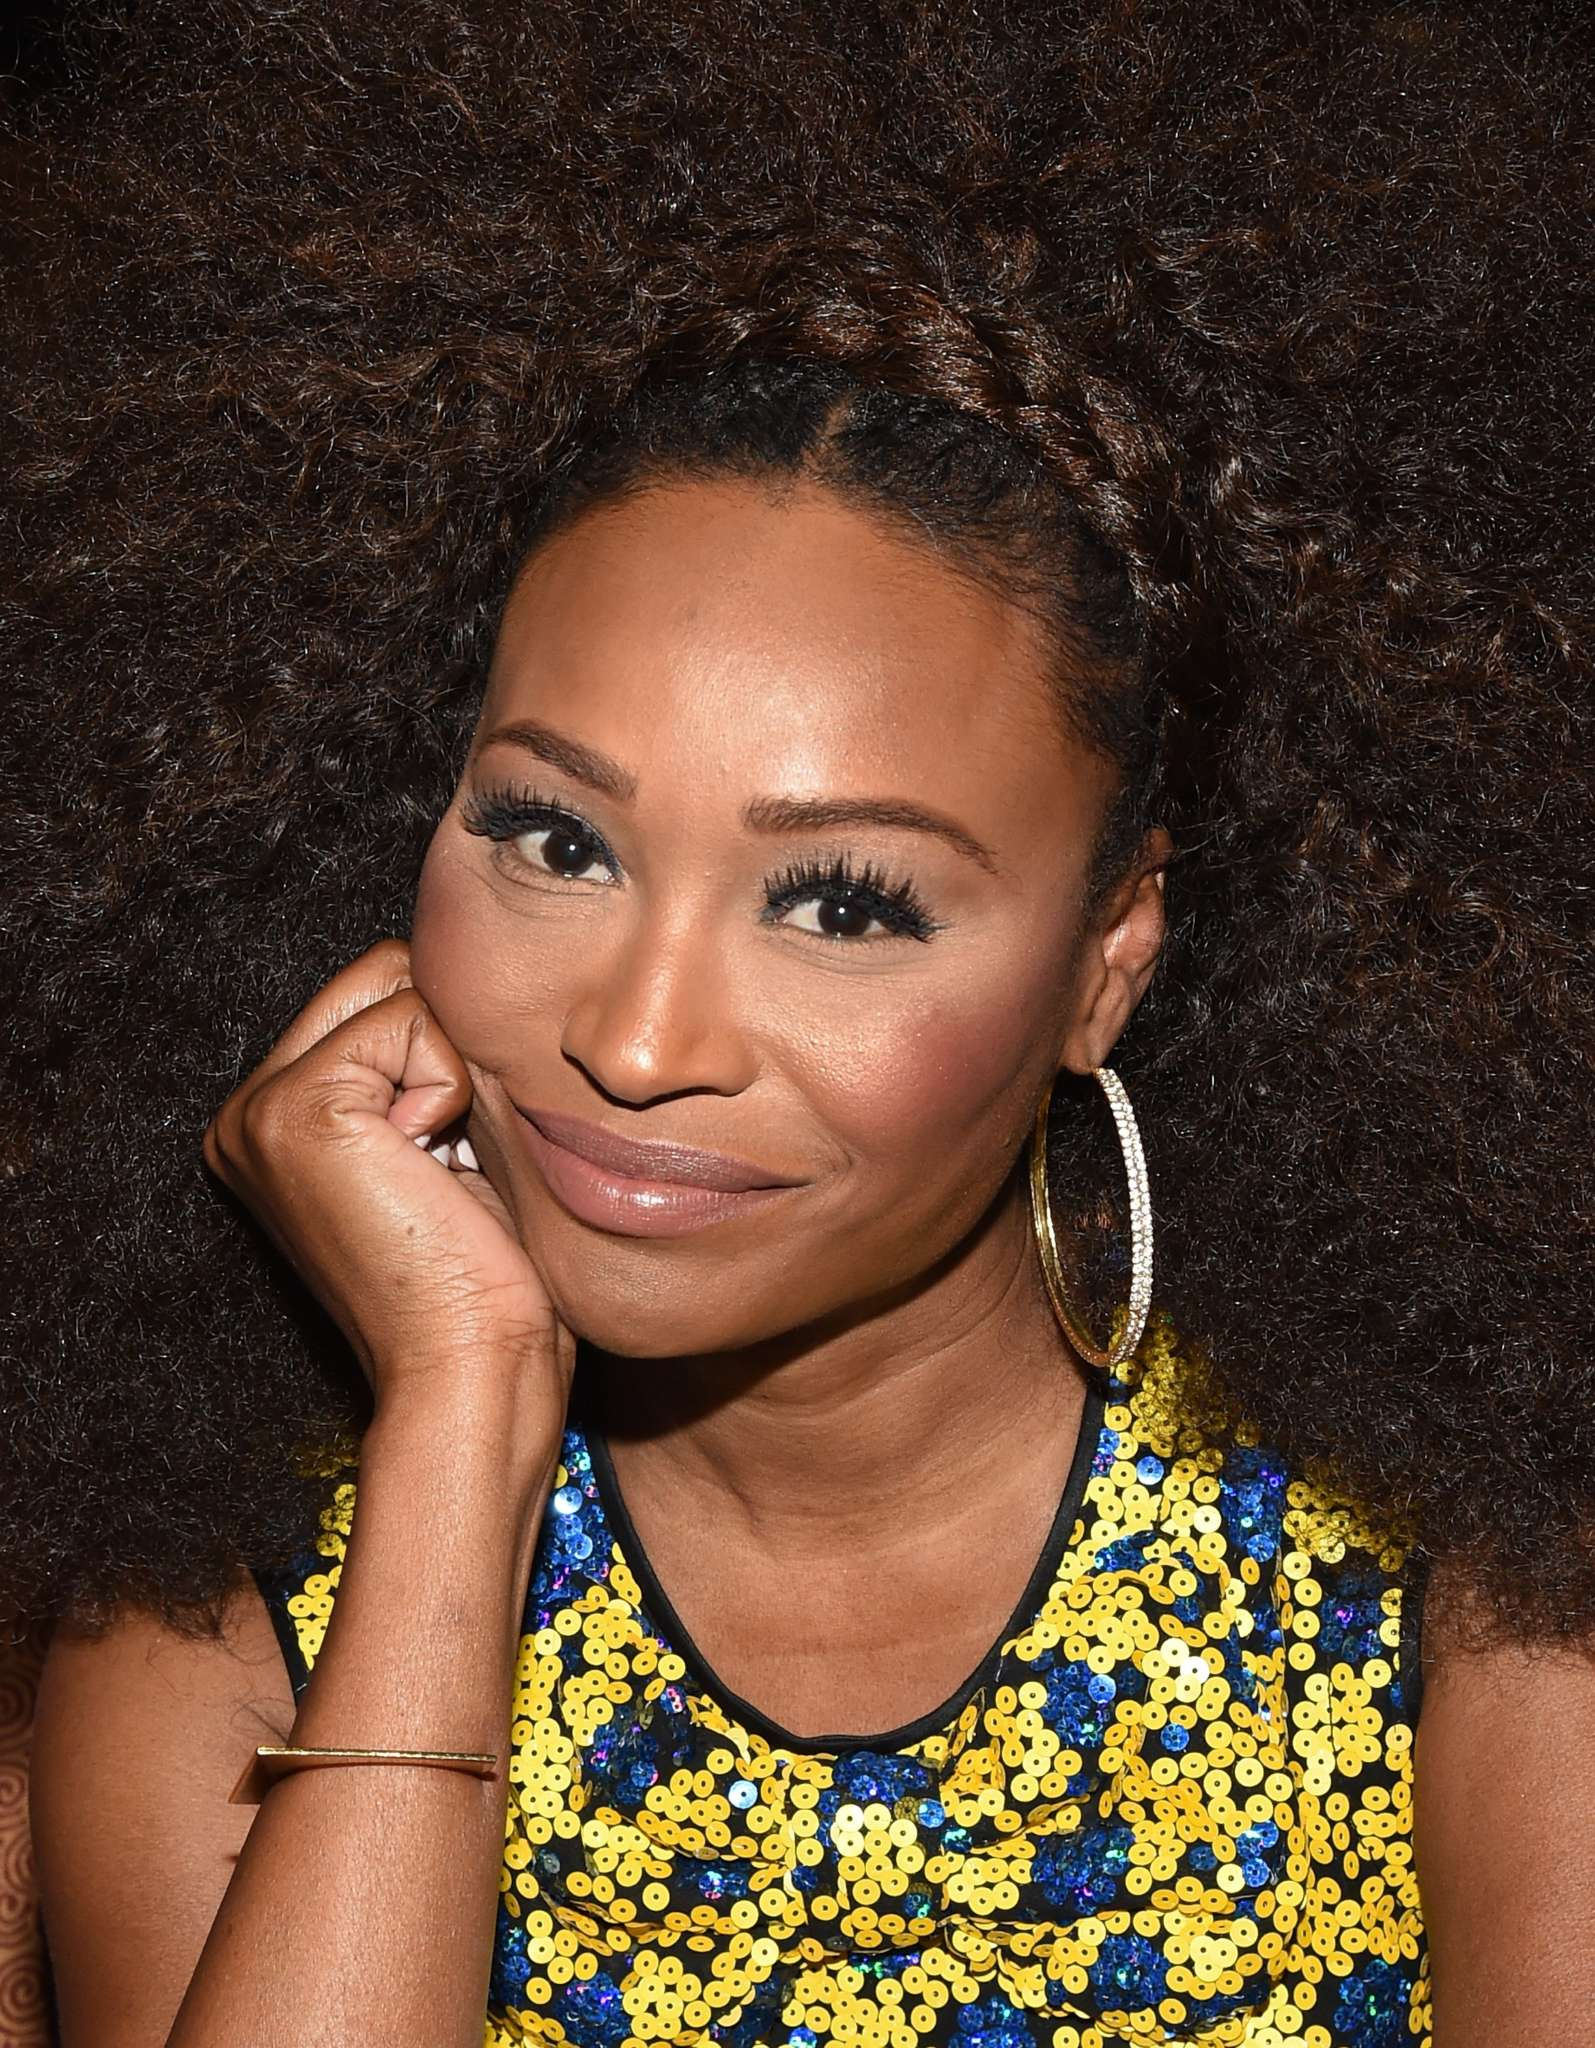 Cynthia Bailey Shows Off Her Amazing Afro And Fans Are In Love With Her Look